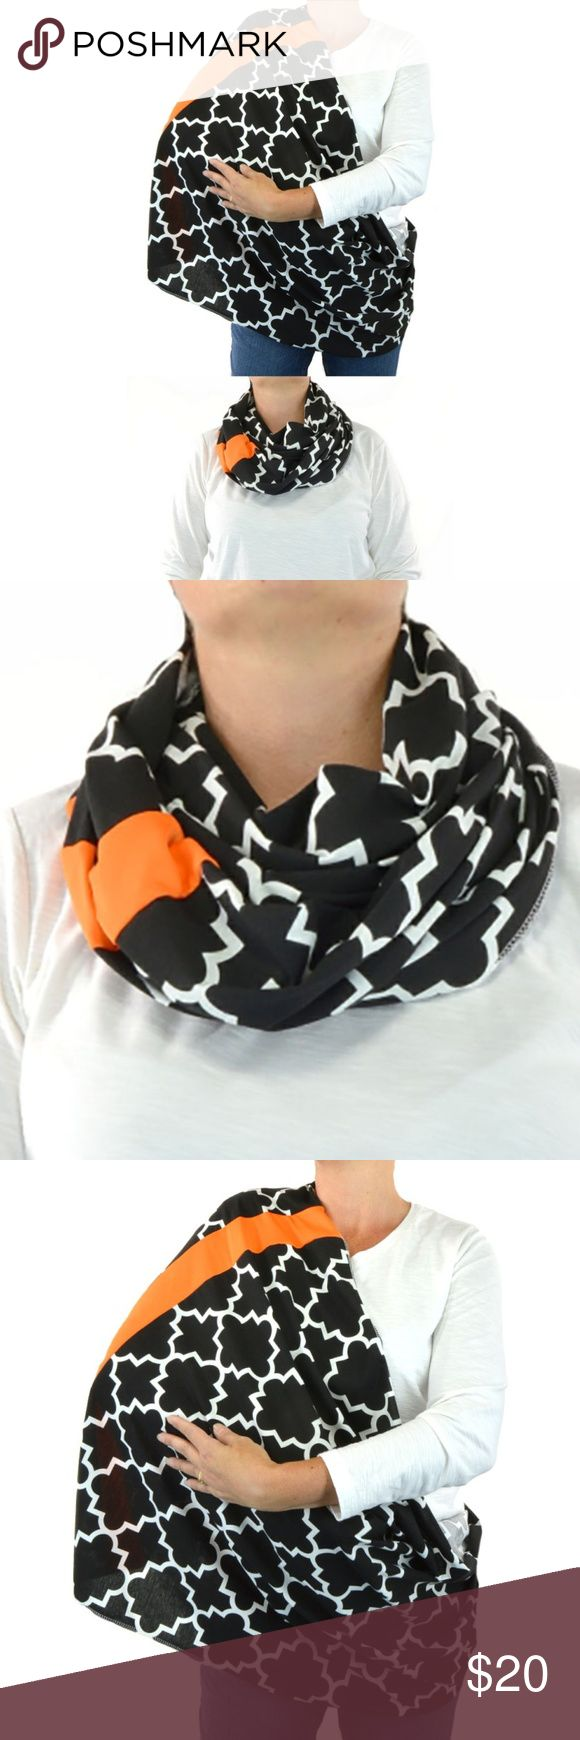 Infinity Nursing Scarf Black Orange Quatrefoil Nursing Infinity Scarf Black Orange Quatrefoil Plaid  ~Handmade Quatrefoil Plaid Infinity Scarf  ~Made with care of poly/cotton blend, making it the perfect soft warm scarf. ~Perfect for quick nursing and double over for fashion infinity scarf.  Perfect Black Nursing Infinity Scarf Orange Quatrefoil Plaid Handmade Accessories Scarves & Wraps